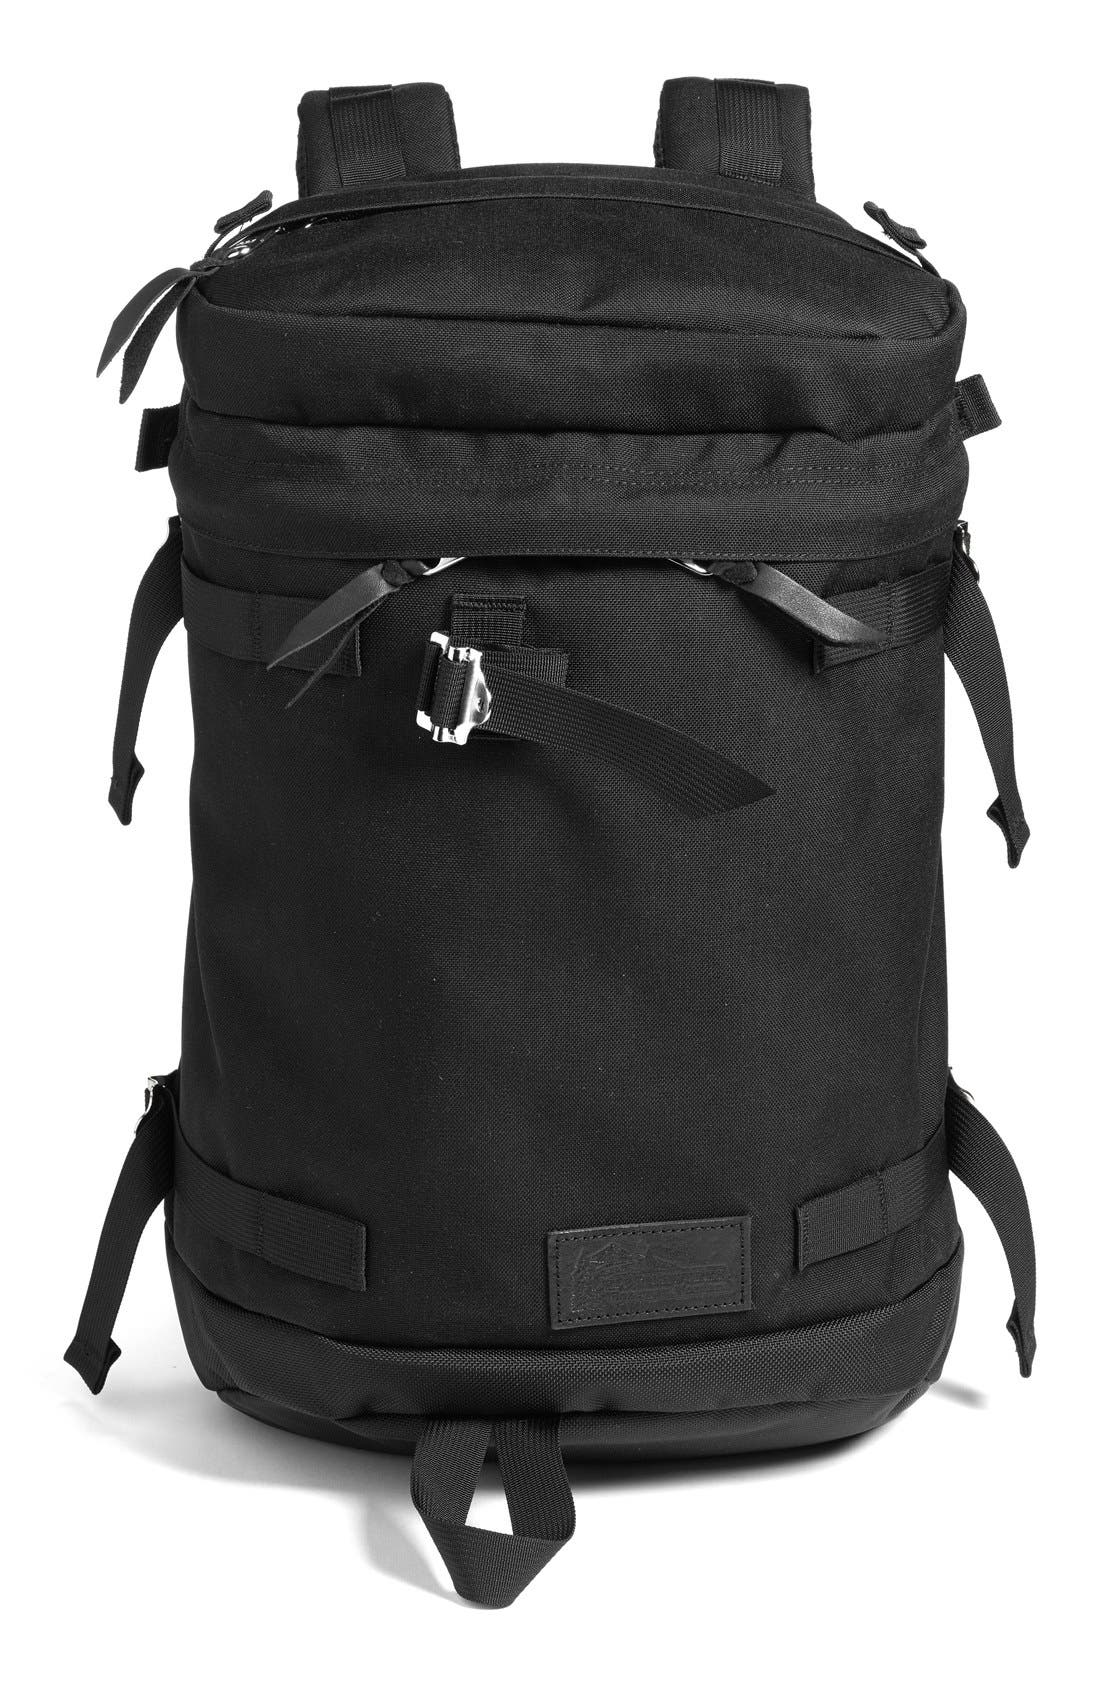 'Flip' Nylon Backpack,                             Main thumbnail 1, color,                             001